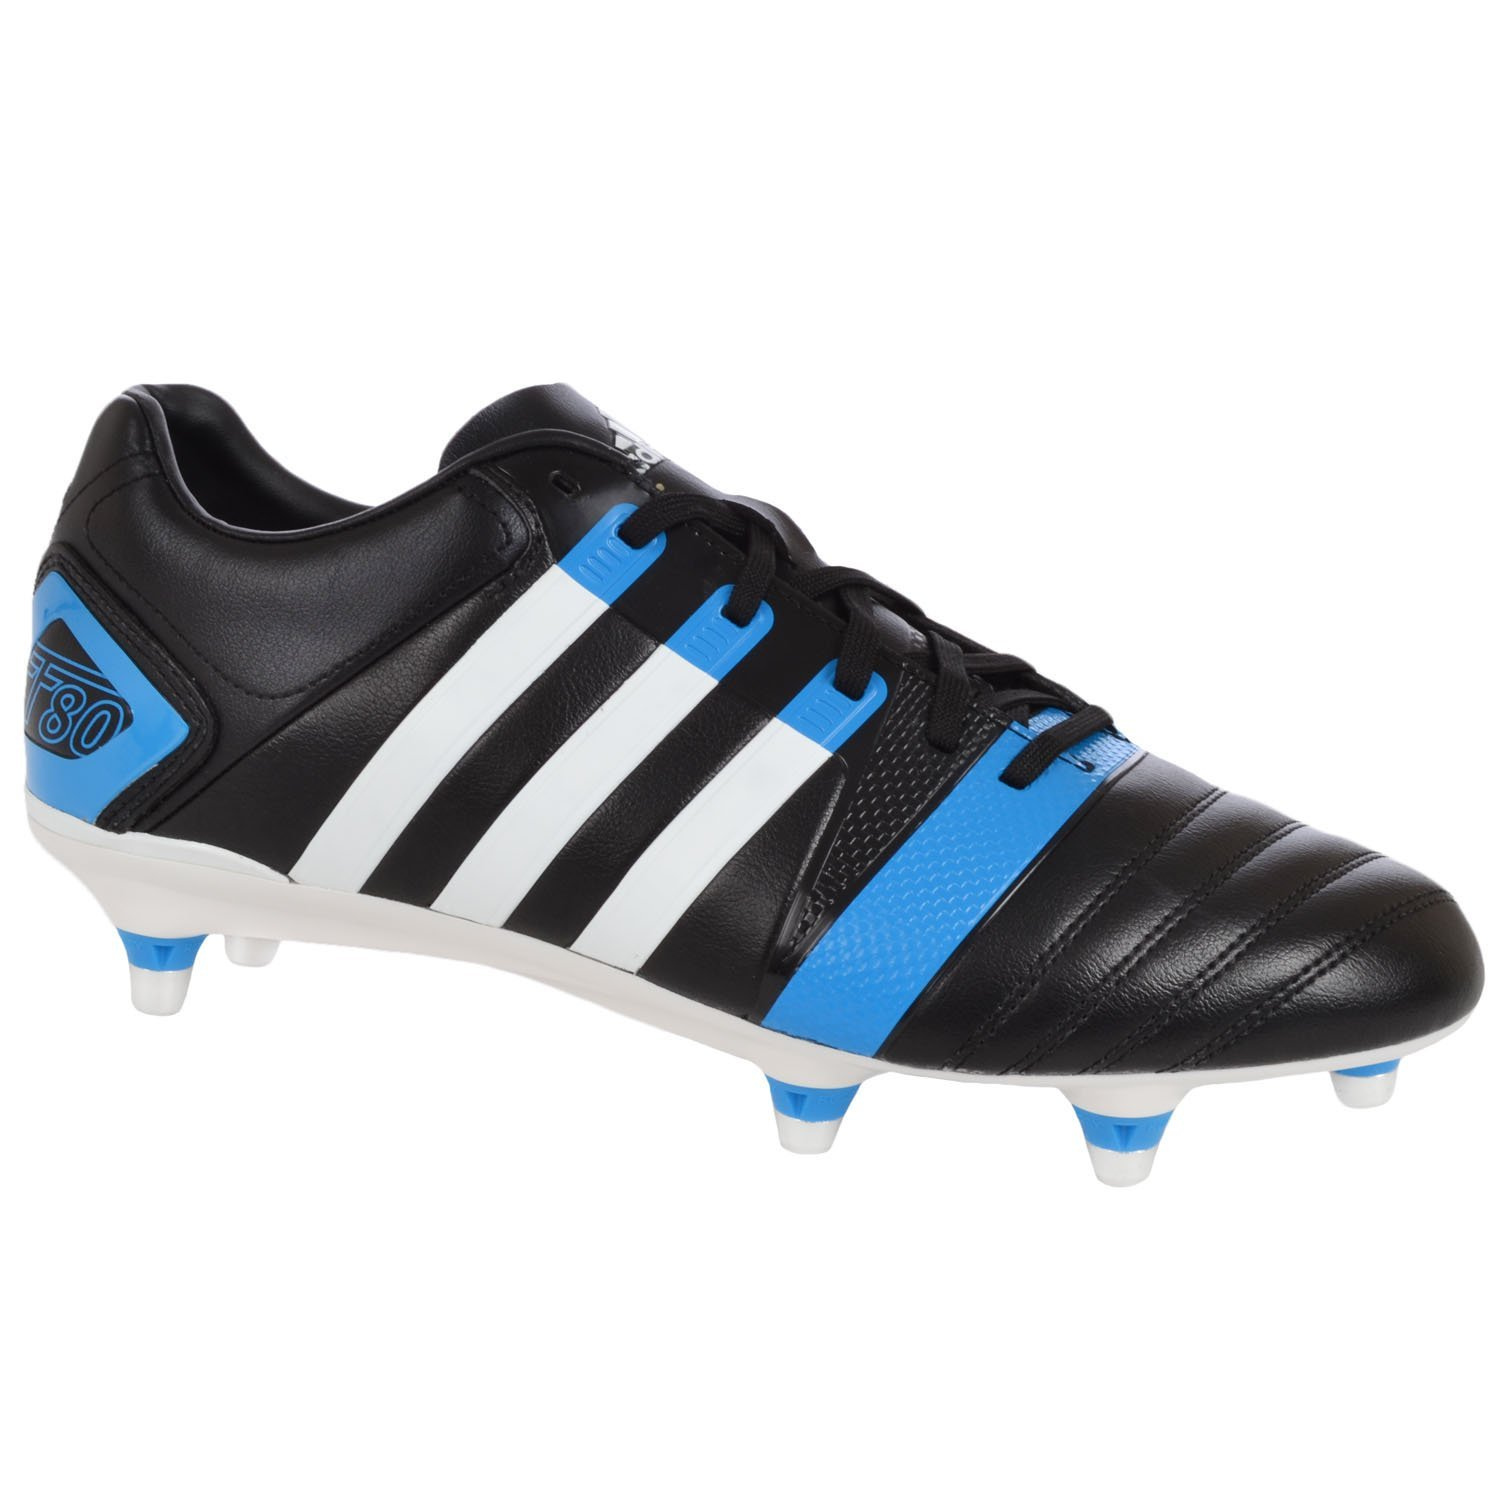 14b44d8f1 Get Quotations · FF80 Pro XTRX SG II Rugby Boots Black Running White Solar  Blue